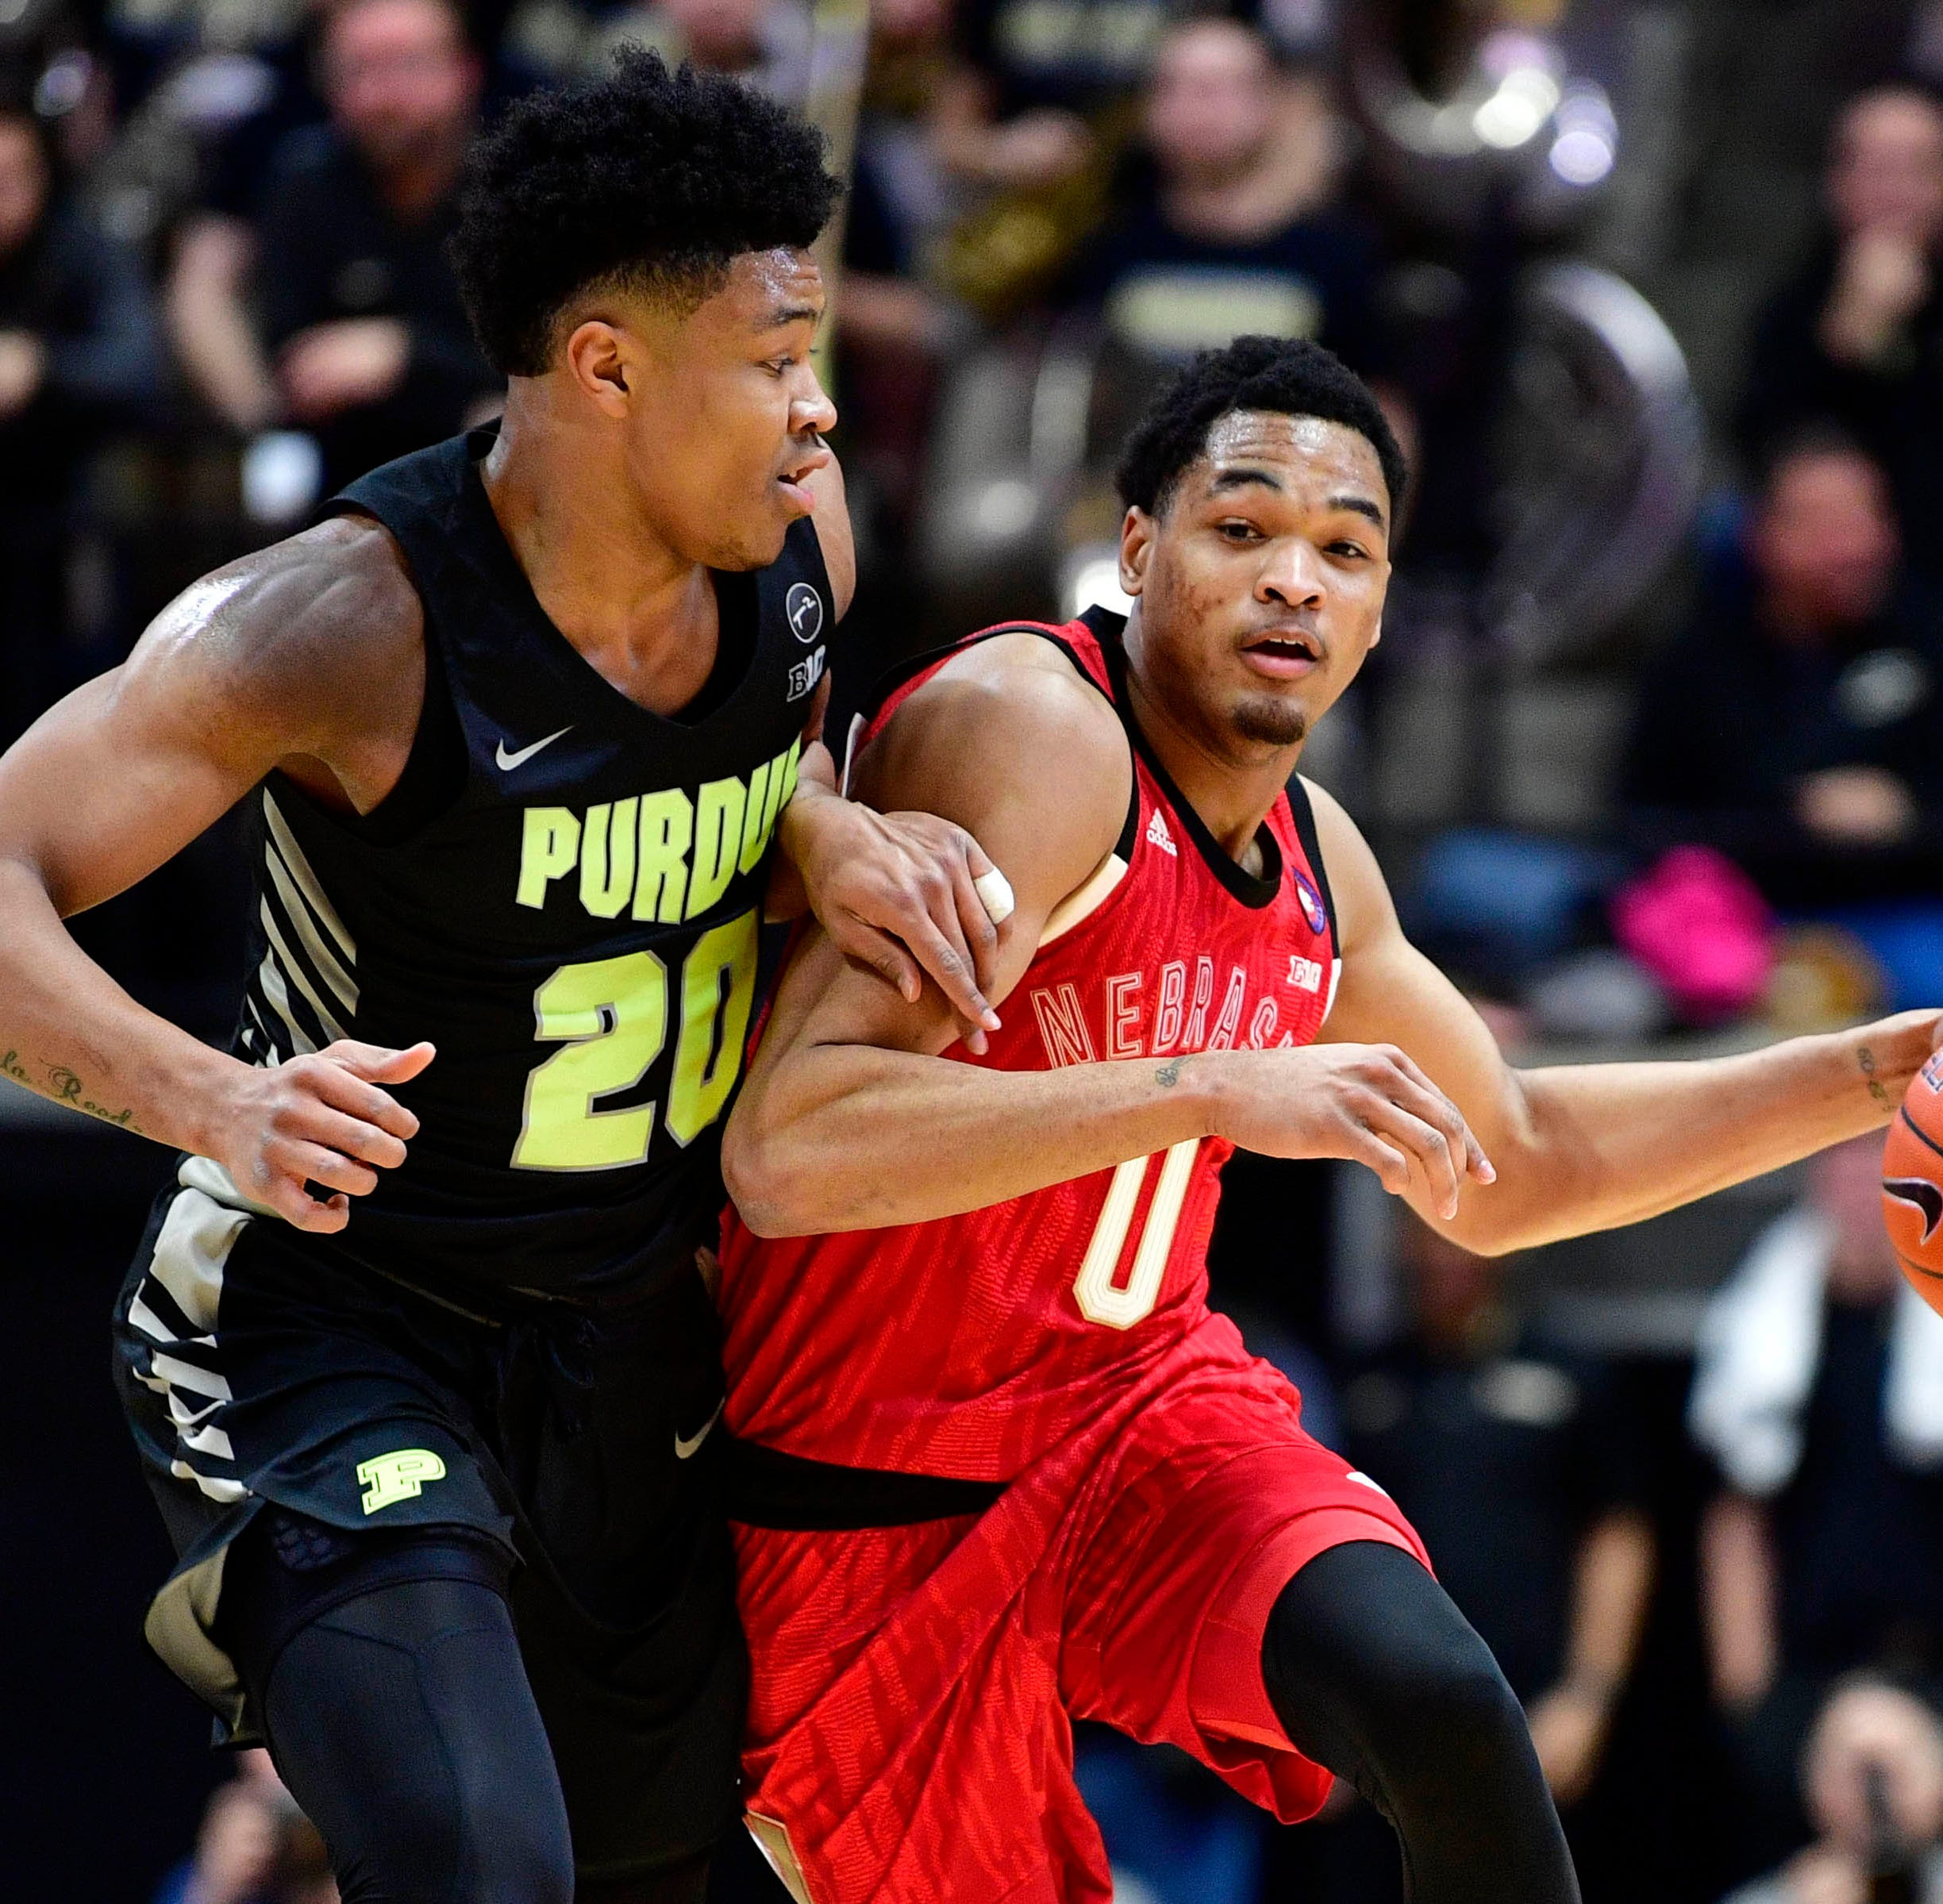 Scouting No. 15 Purdue men's basketball at Nebraska